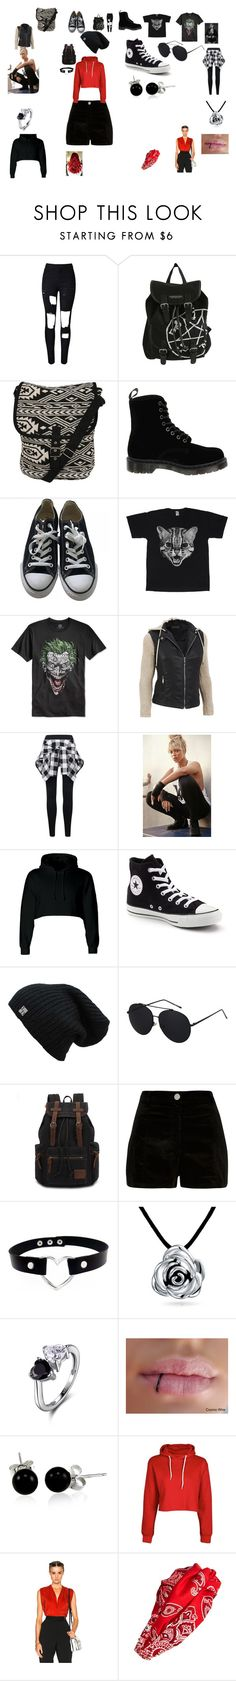 """""""My summer collection"""" by theneighbourhoodpunk13 on Polyvore featuring Pilot, Dr. Martens, Converse, Bioworld, Topshop, River Island, Bling Jewelry, Lanvin, Cara and plus size clothing"""